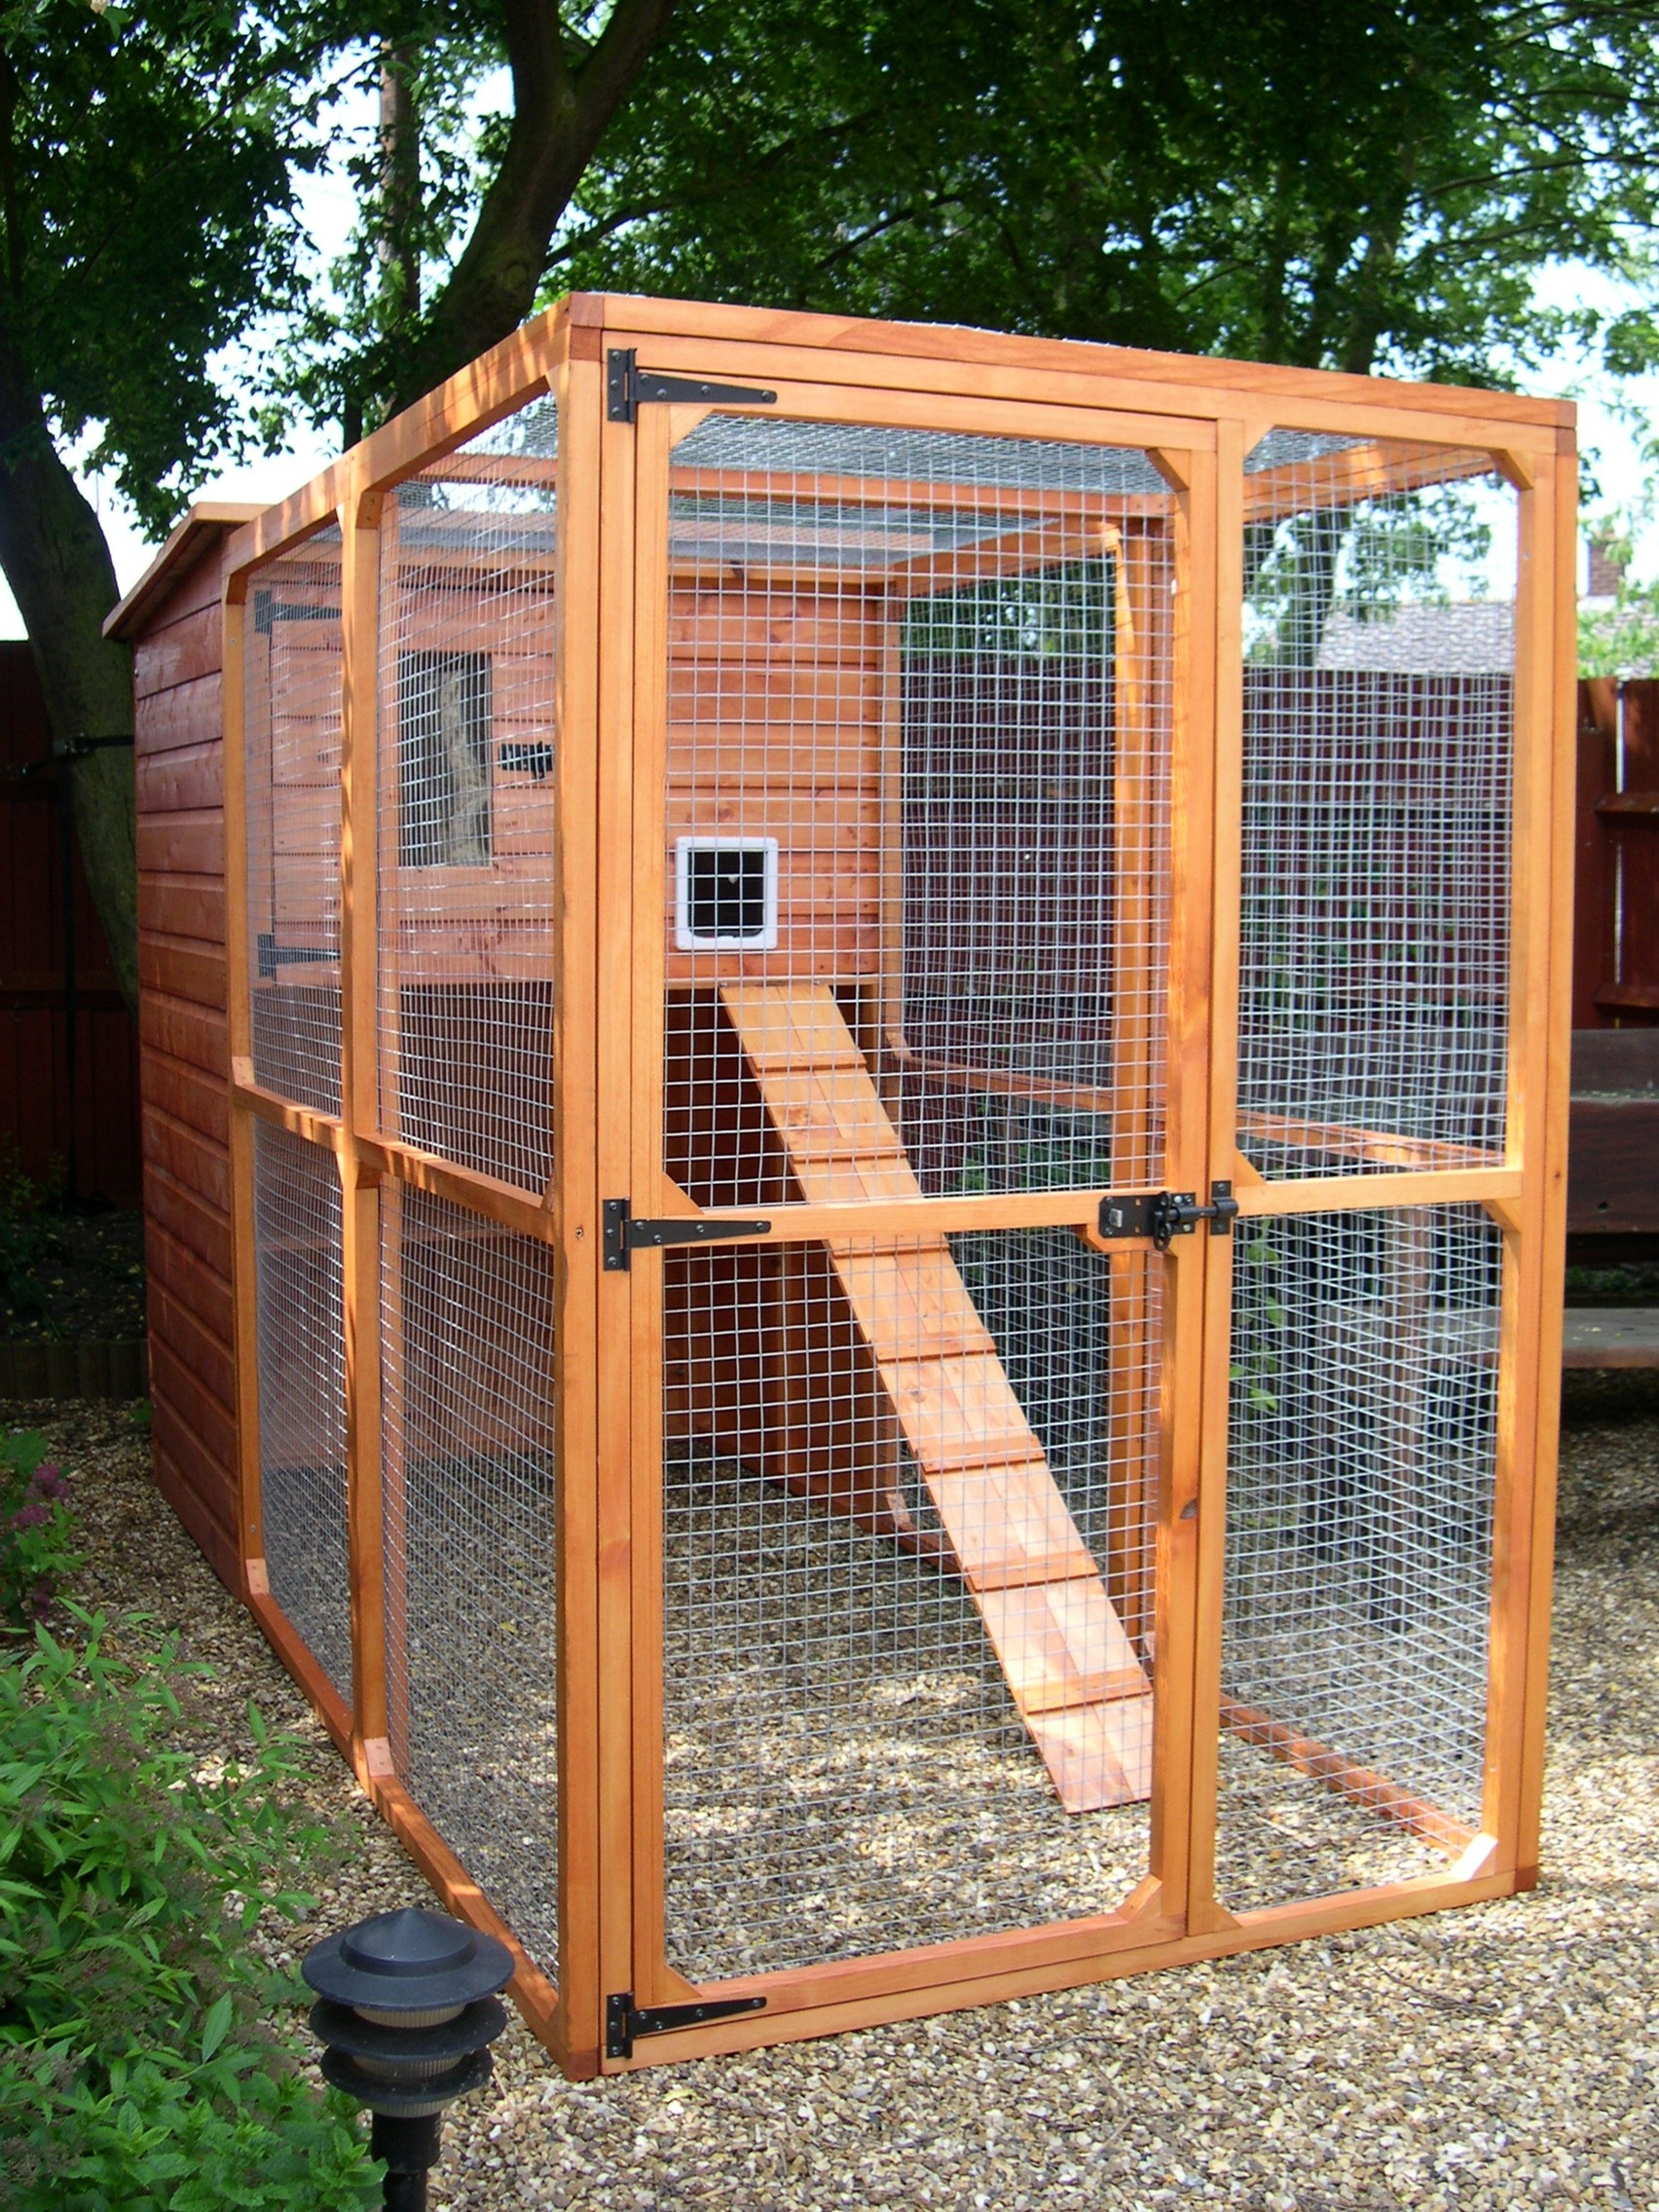 Building A Catio – An Outside Cat Enclosure